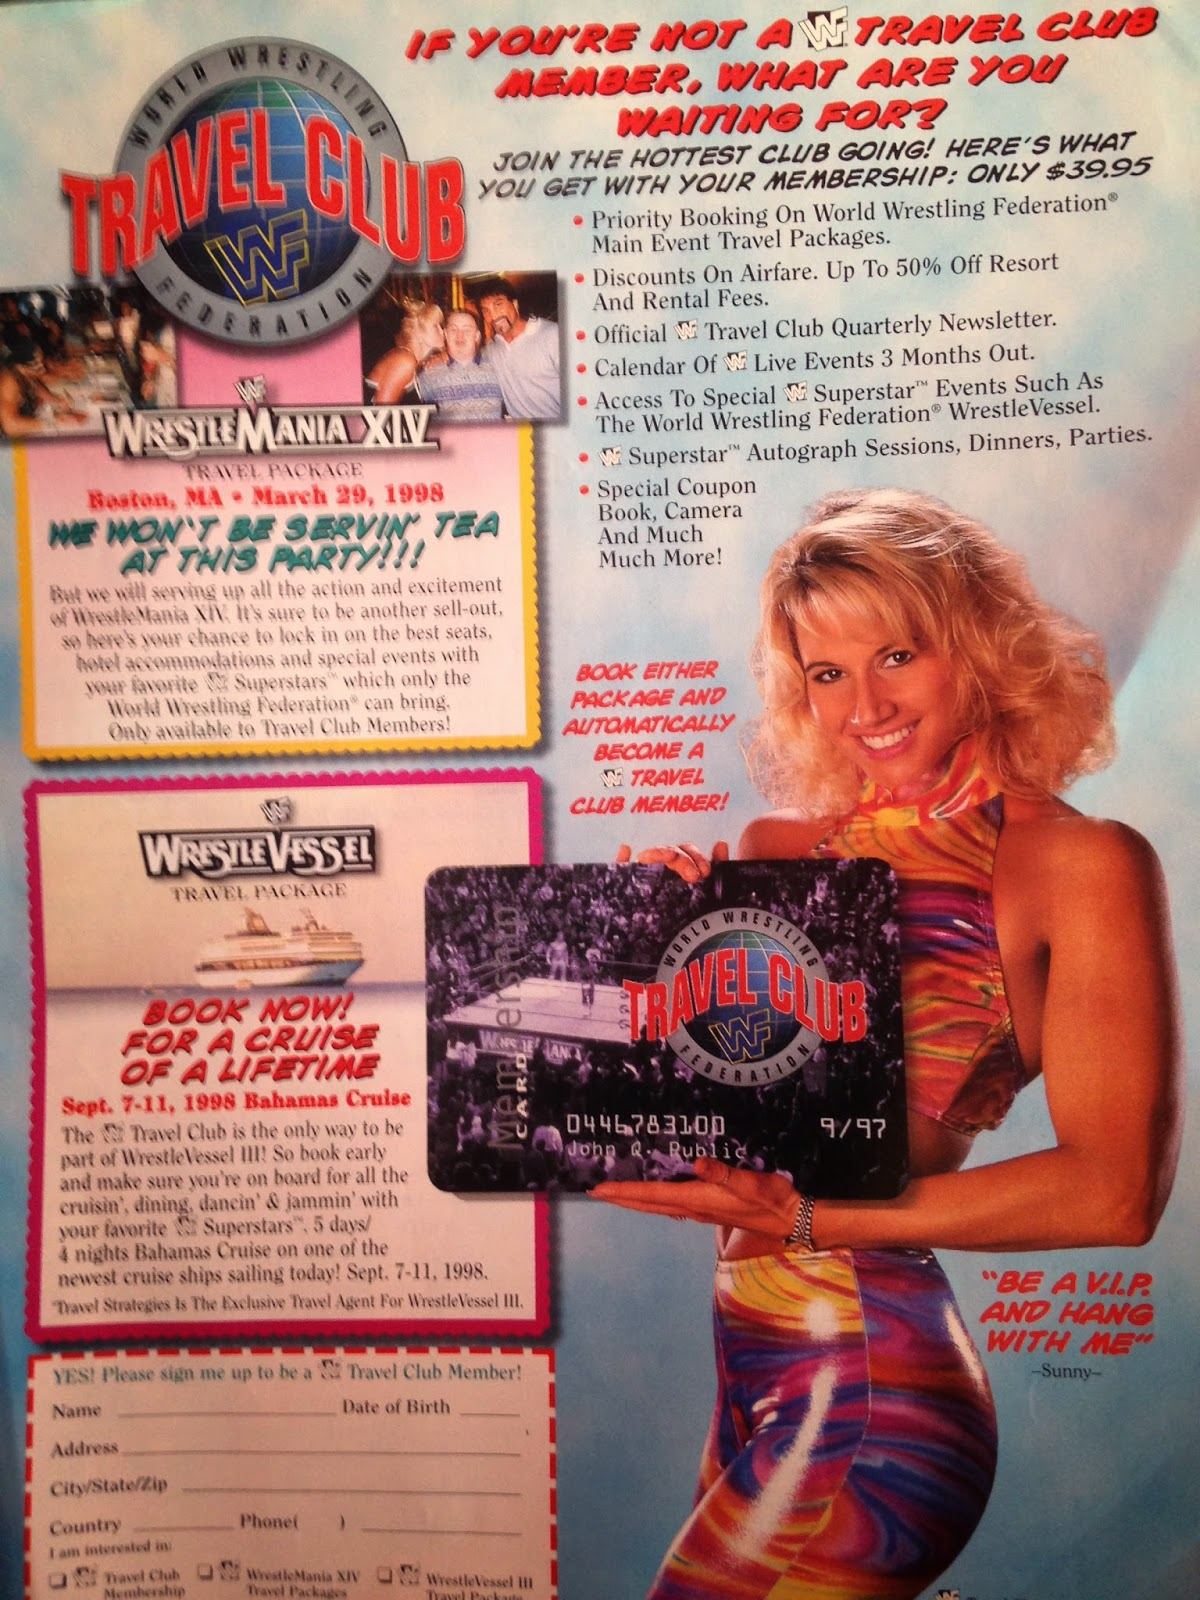 WWE: WWF RAW MAGAZINE - January 1998 - Sunny promotes the WWE travel club